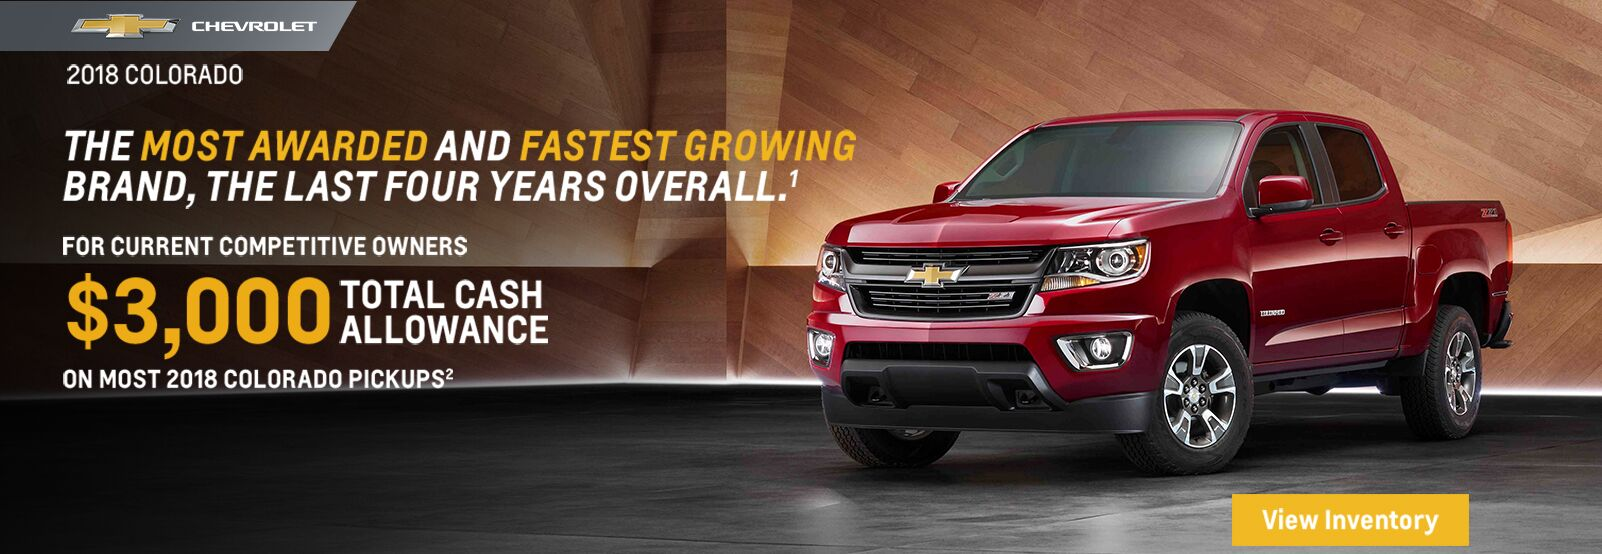 2018 Chevrolet Colorado Offers